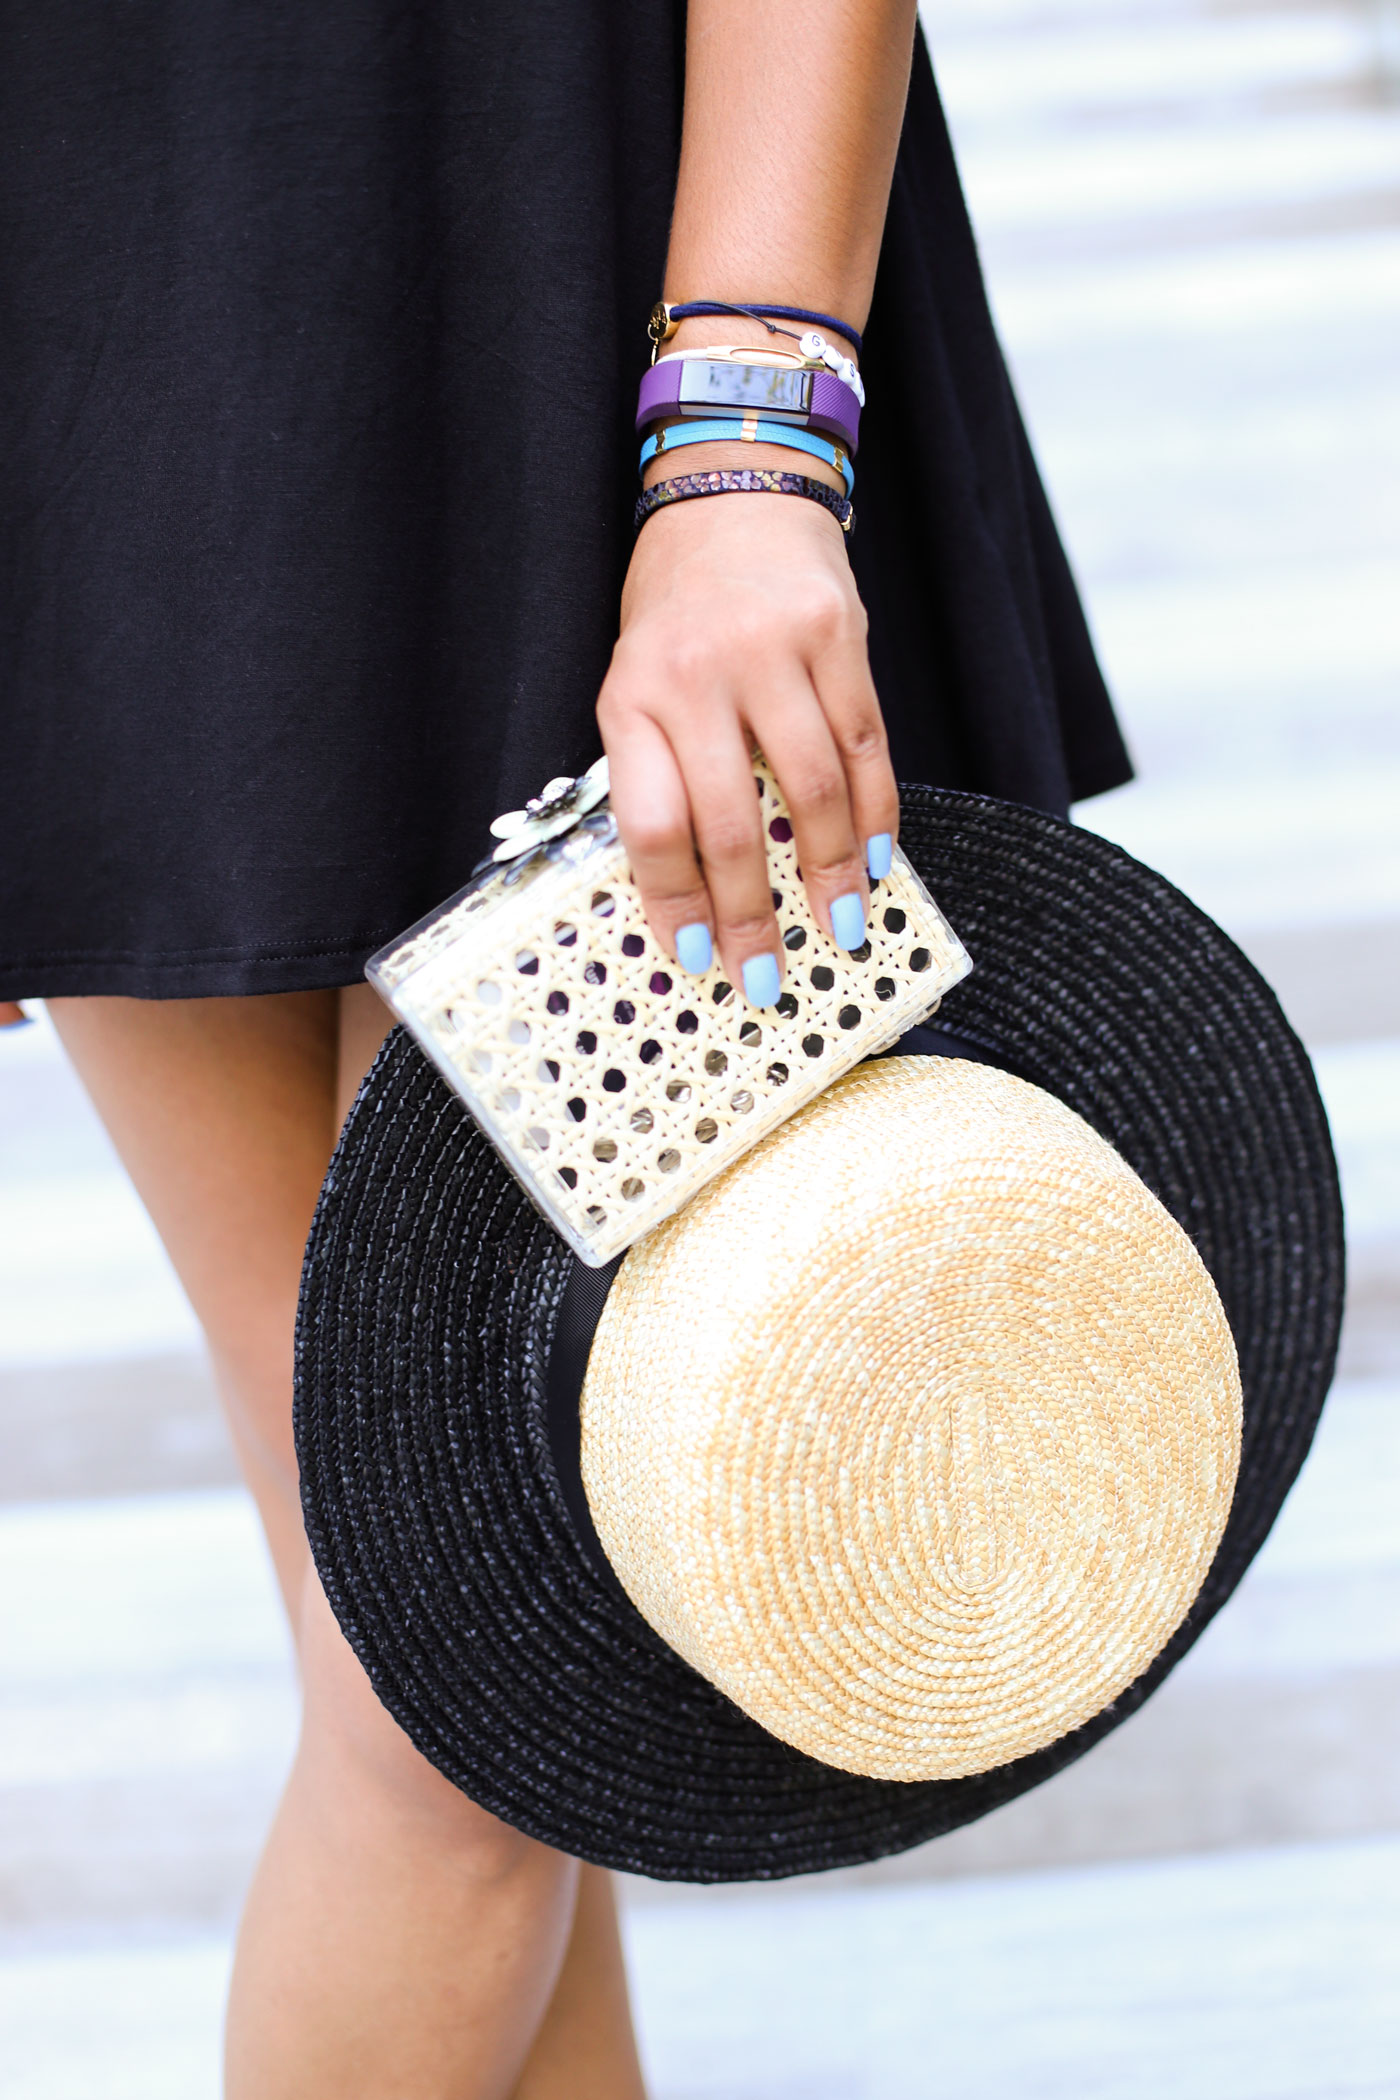 TAOS-Who-what-wear-boater-hat-by-lilla-bracelets